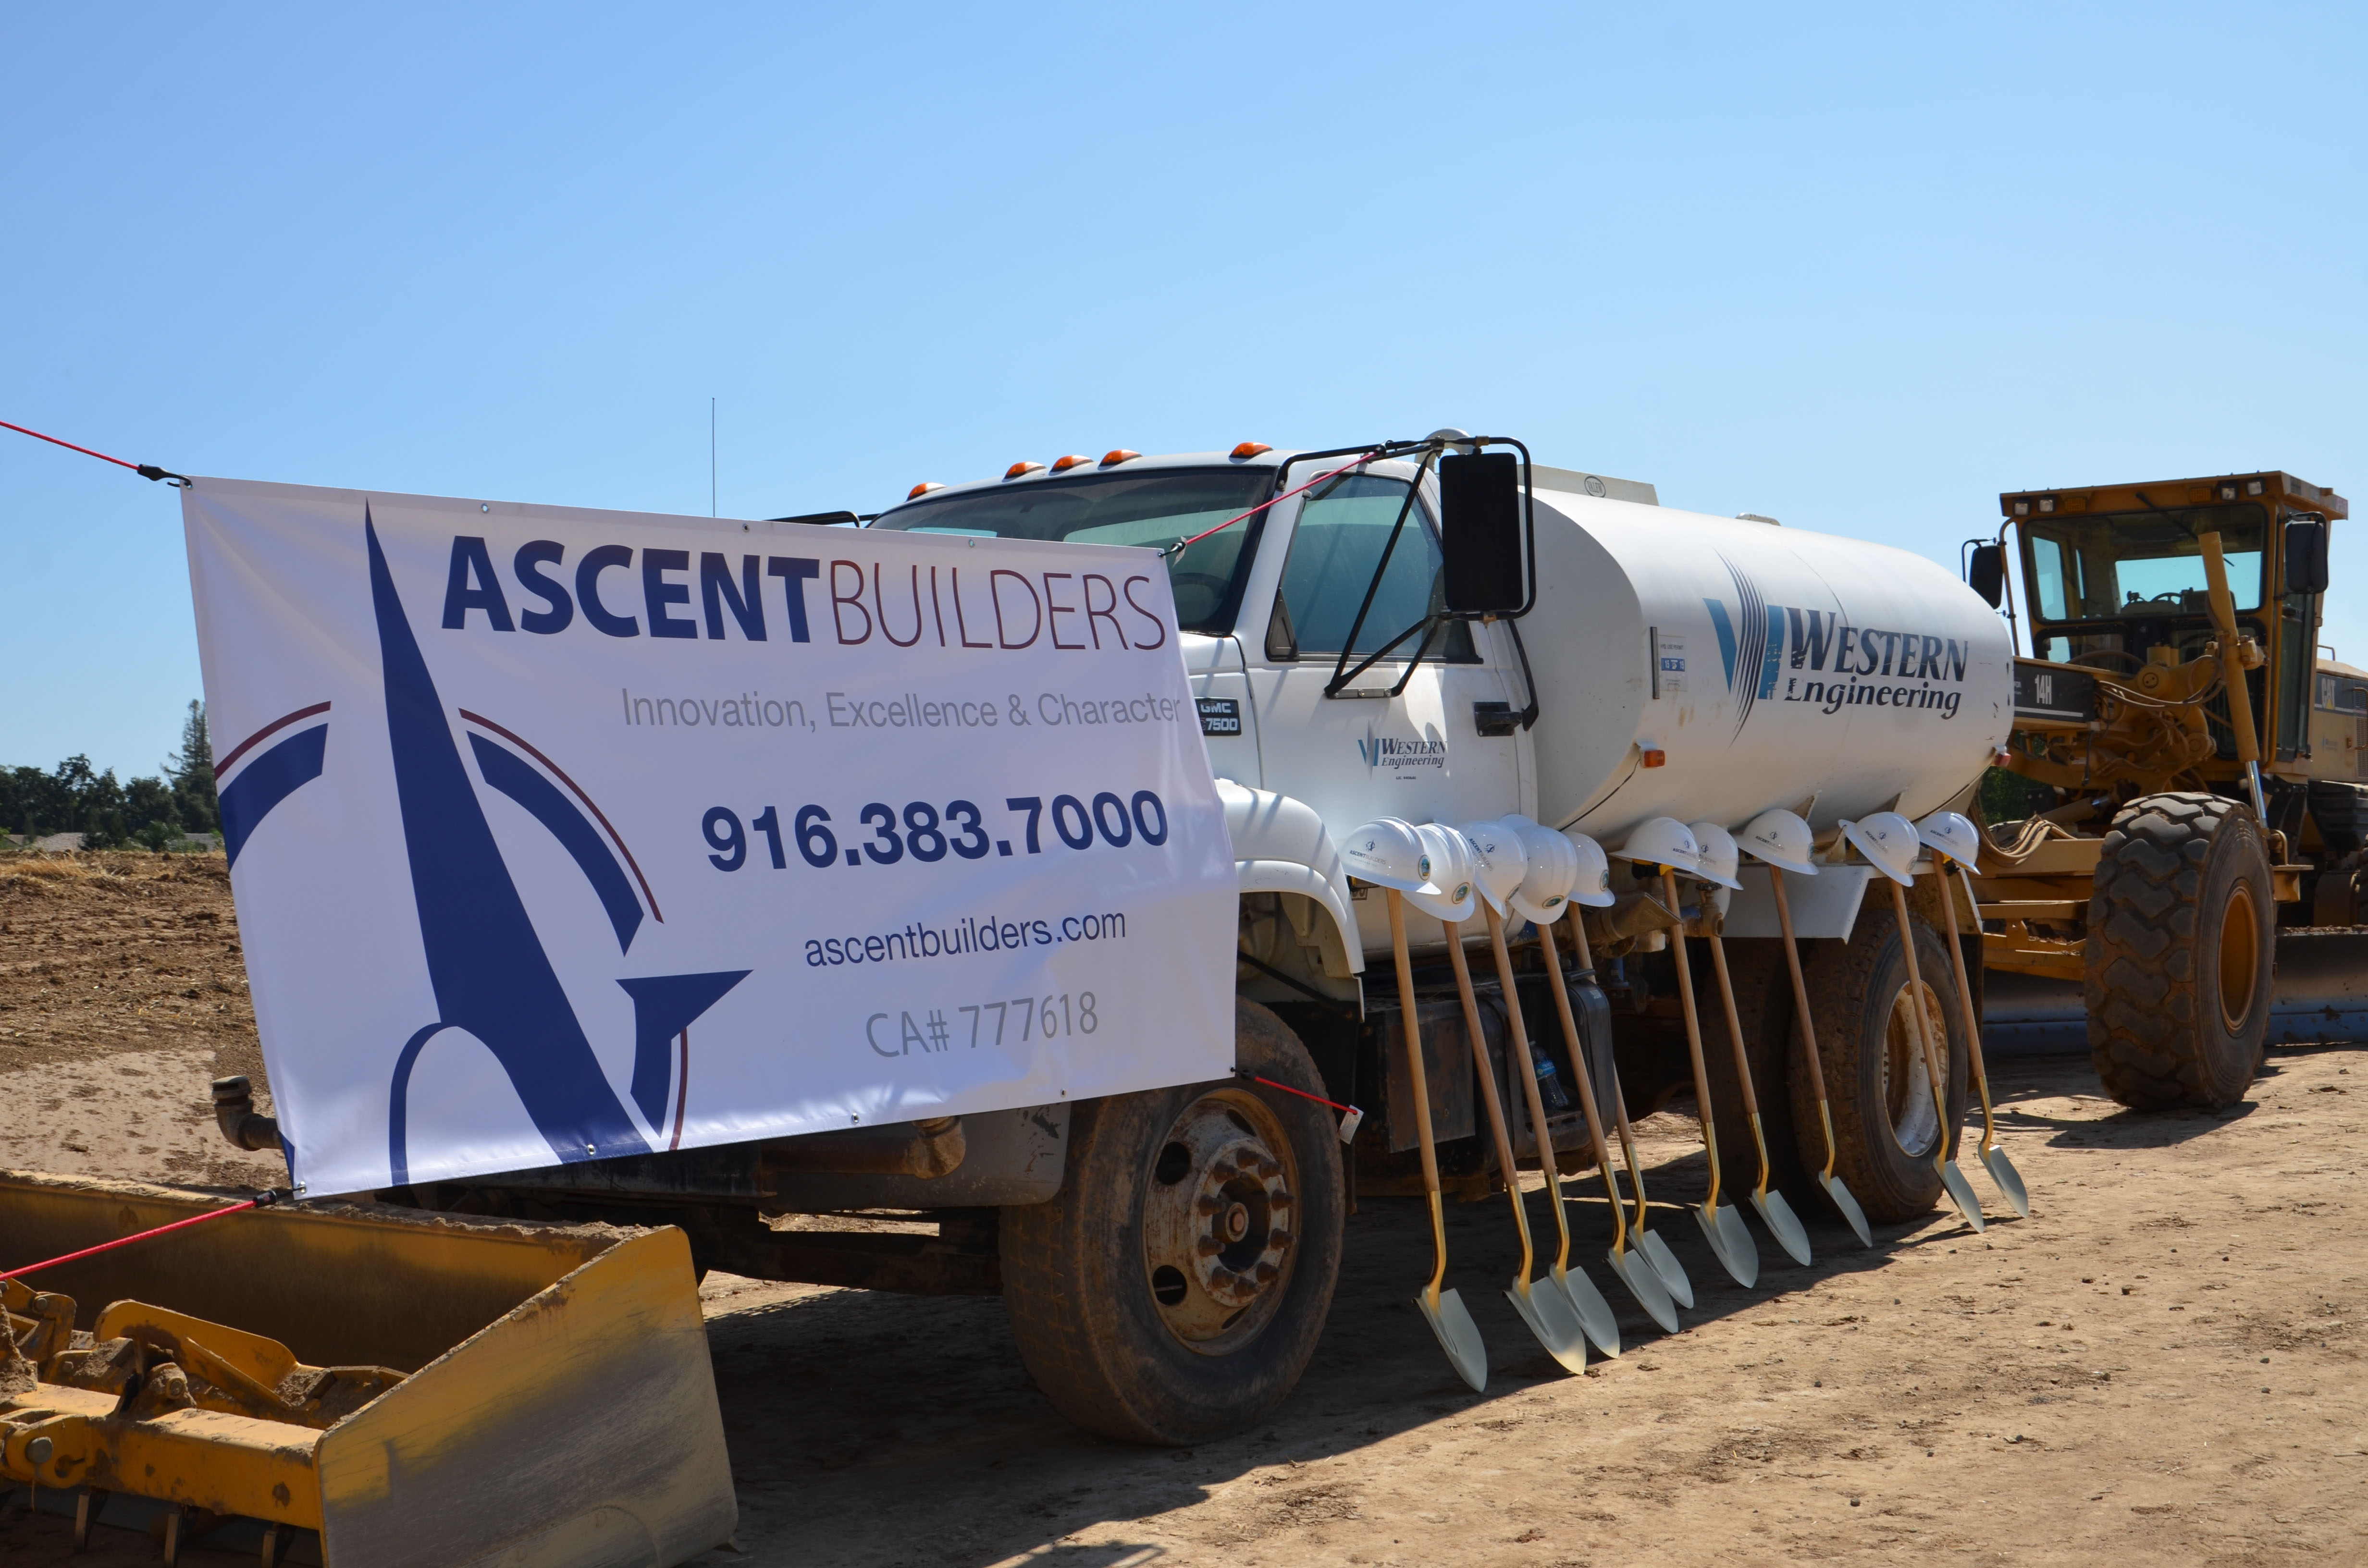 The groundbreaking shovels and hardhats lined up in front of Ascent Builders trucks